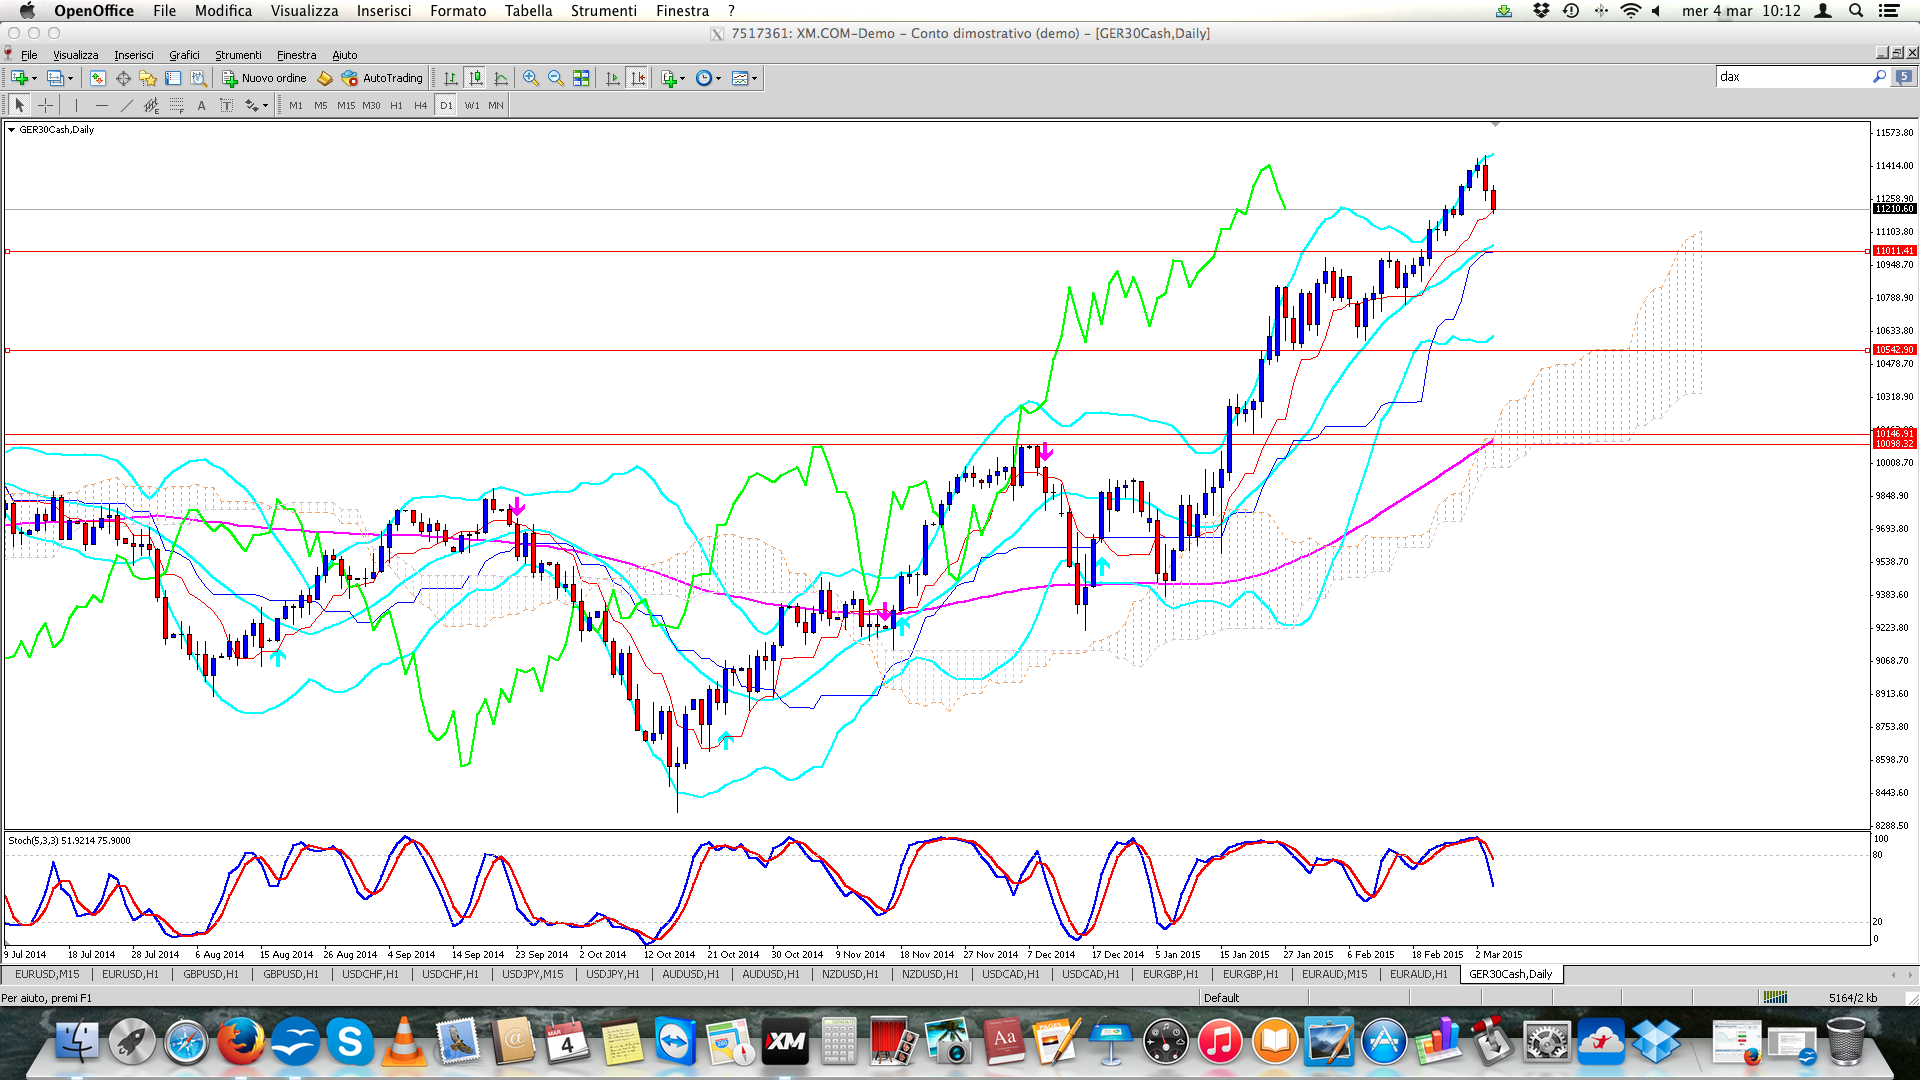 Trend Gt GER30 H4 - Daily